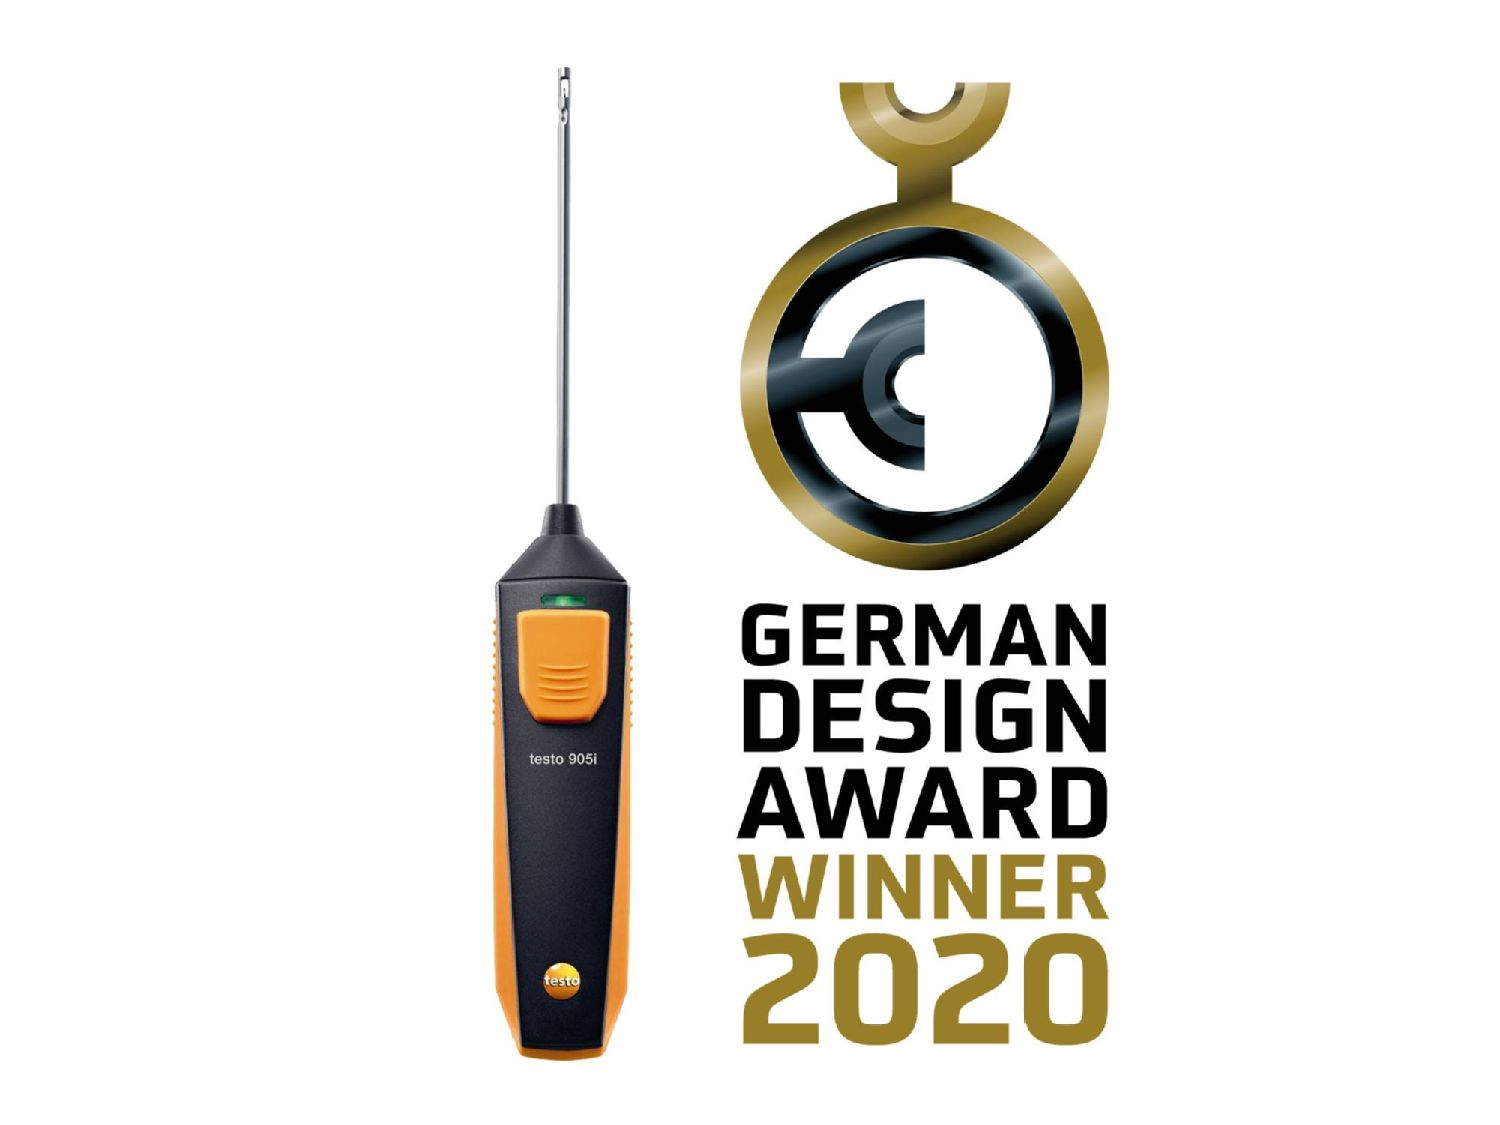 testo 905i German Design Award